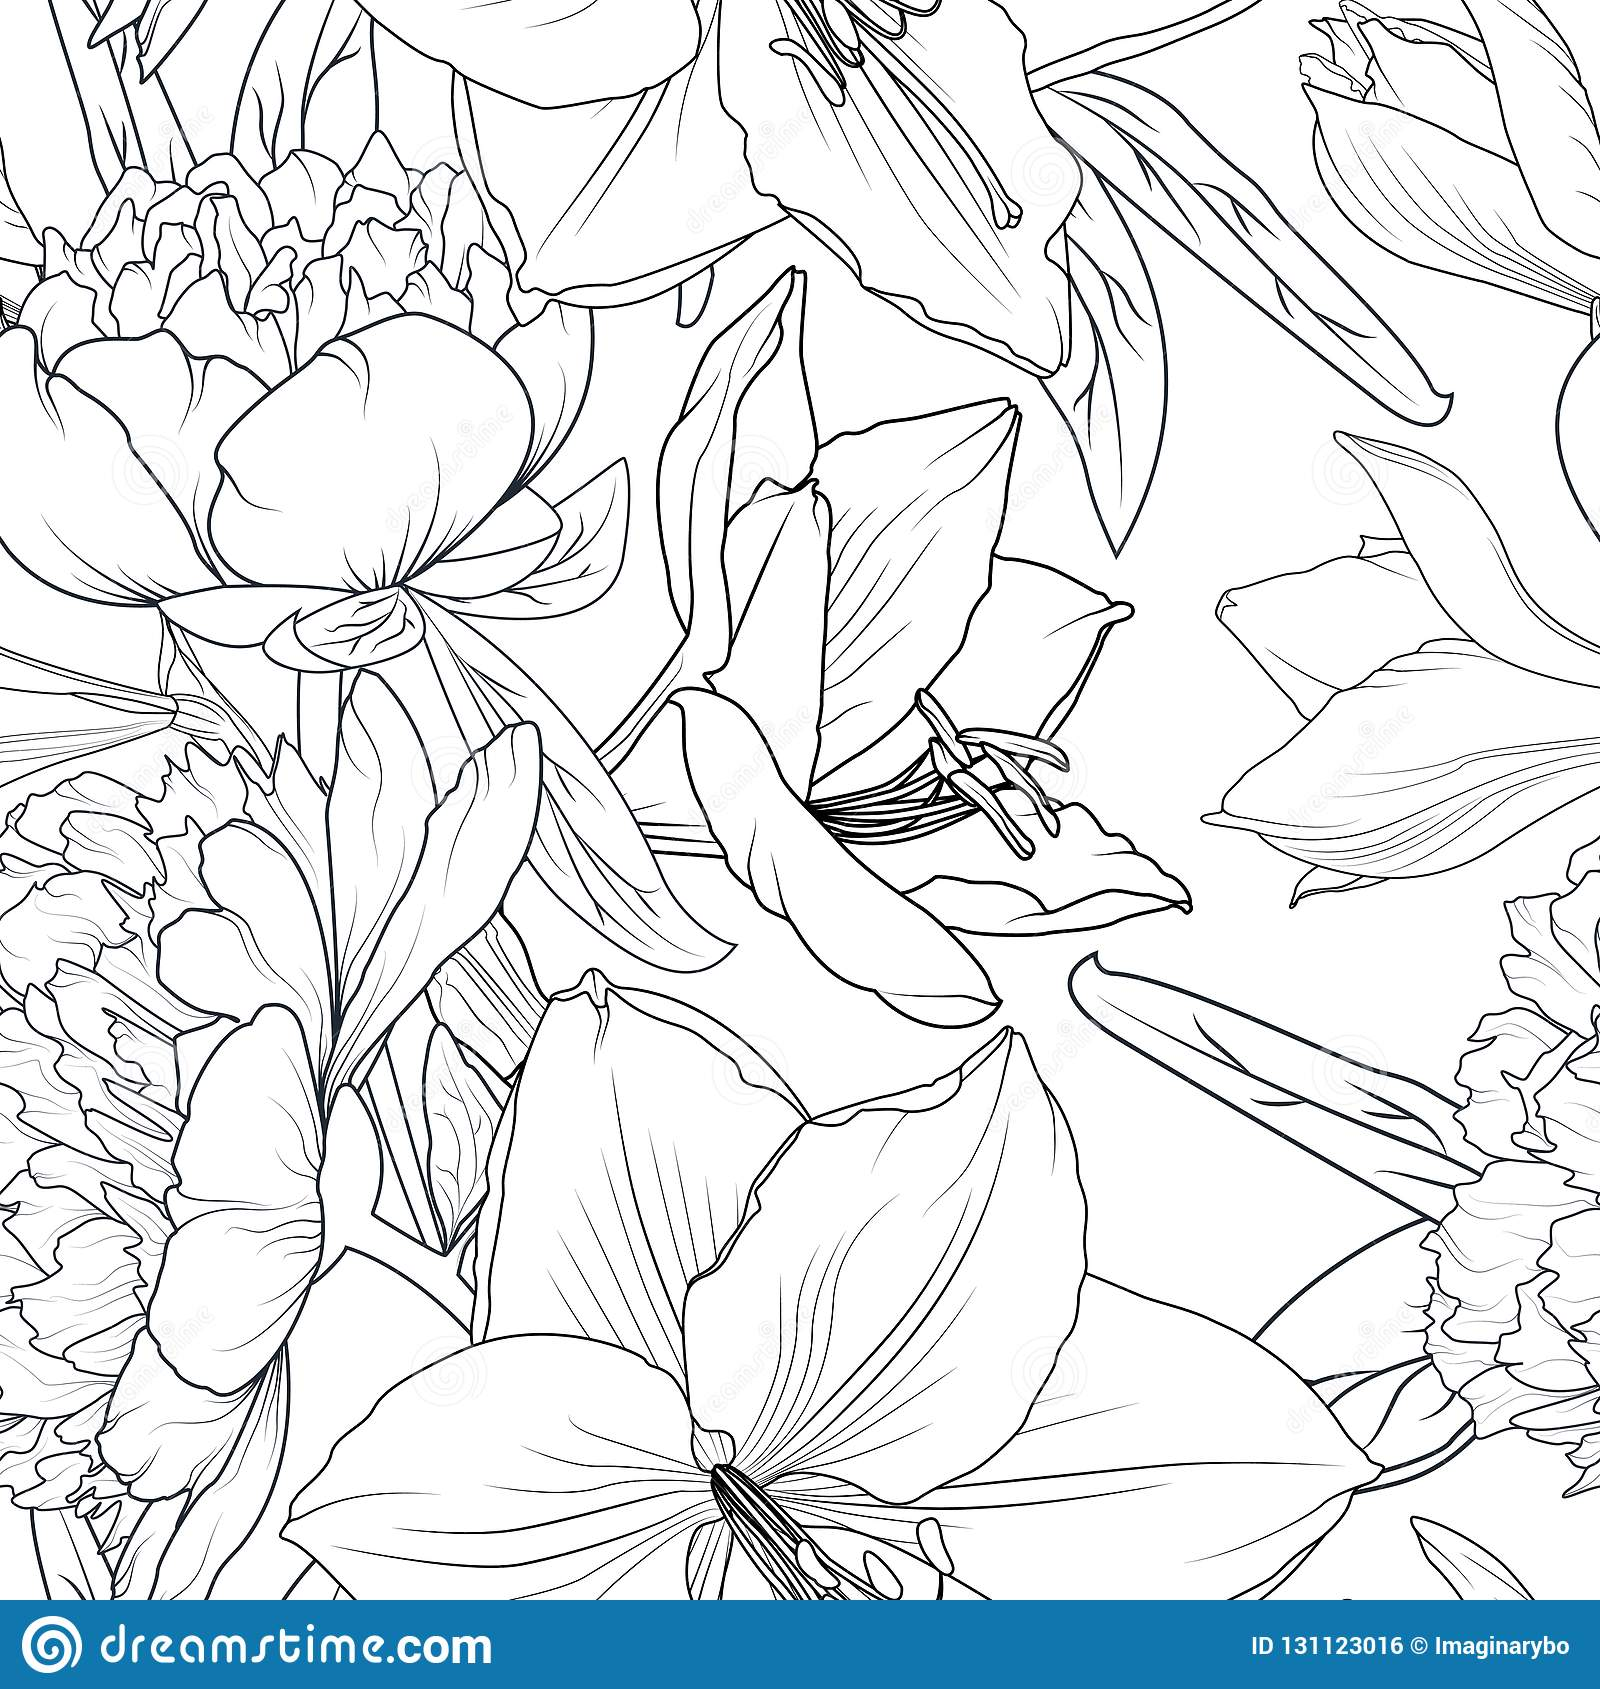 Greyscale Stock Illustrations 13 676 Greyscale Stock Illustrations Vectors Clipart Dreamstime